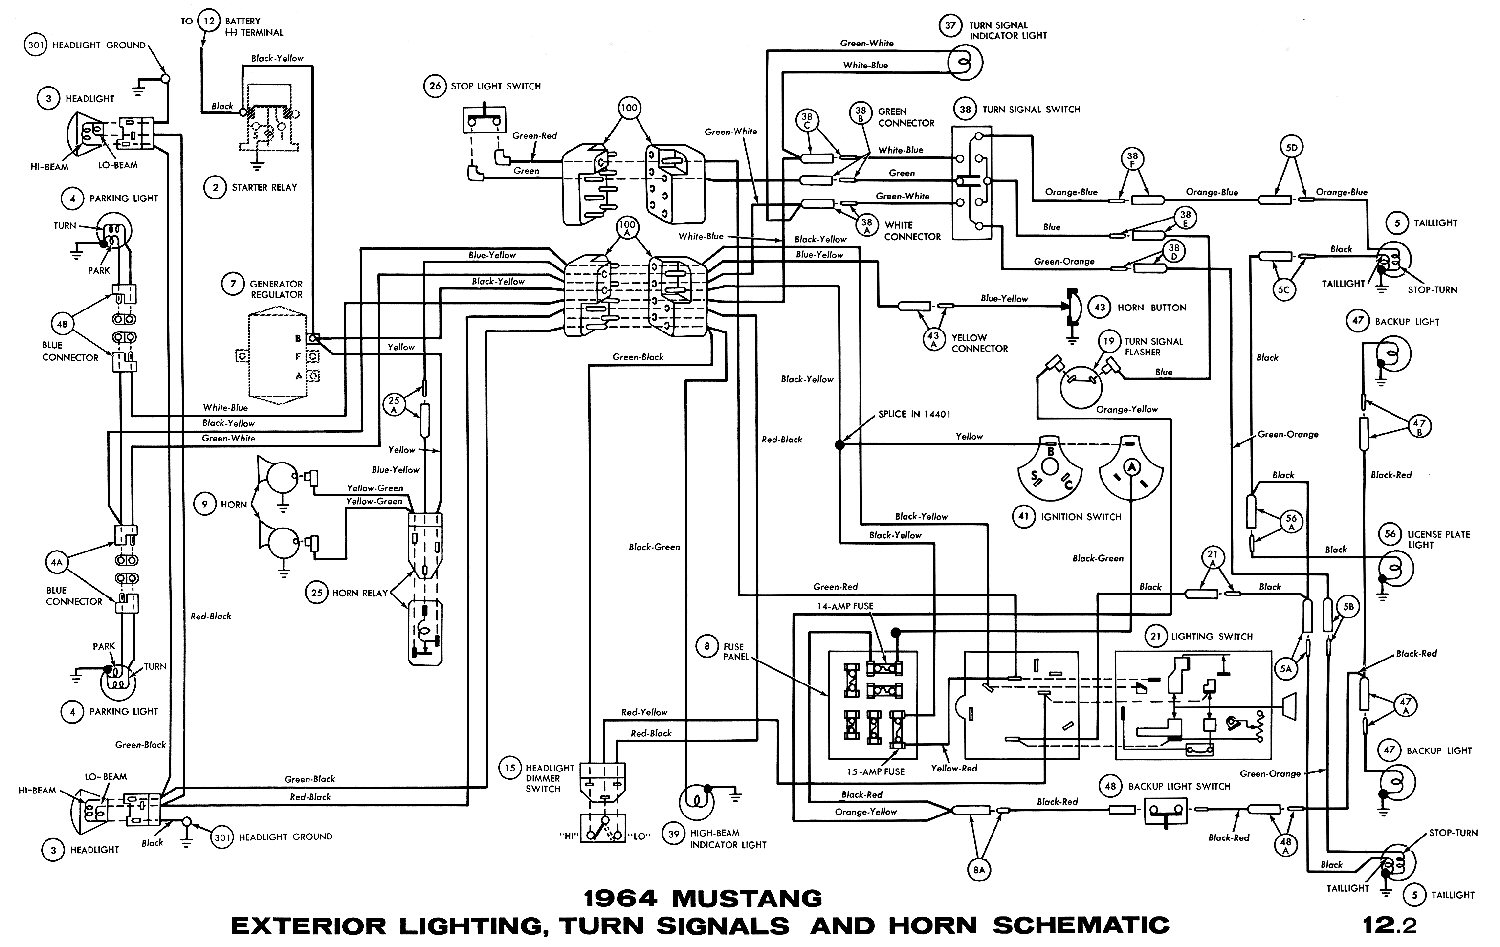 1964i 1965 ford mustang wiring diagram 1999 mustang gt wiring diagram 1965 ford mustang wiring diagrams at gsmportal.co